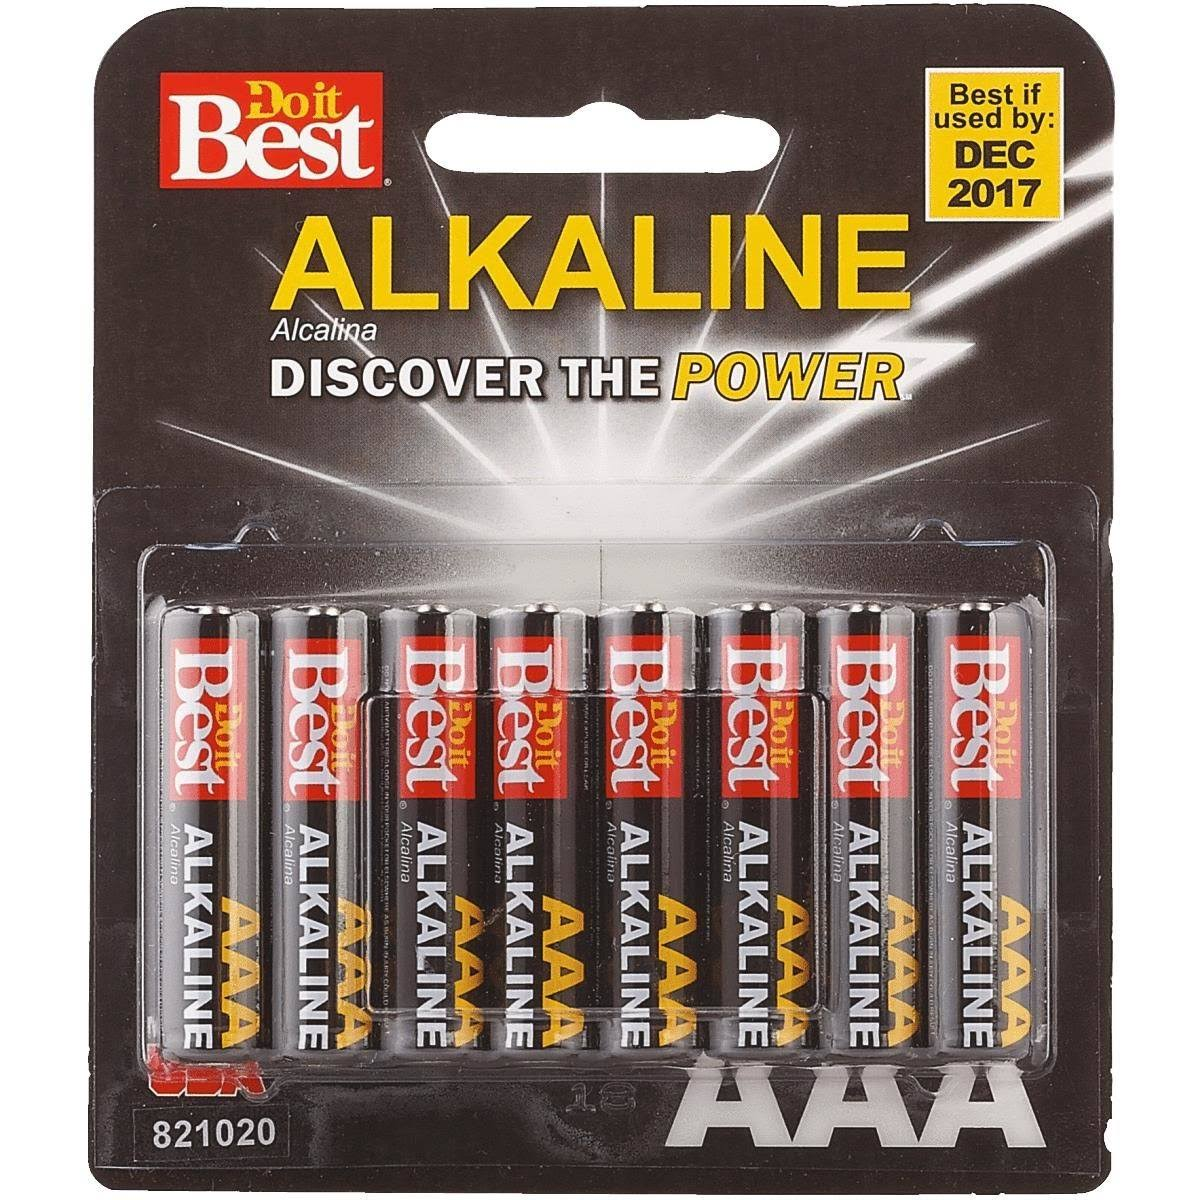 Do It Best Alkaline Battery - Aaa, x8